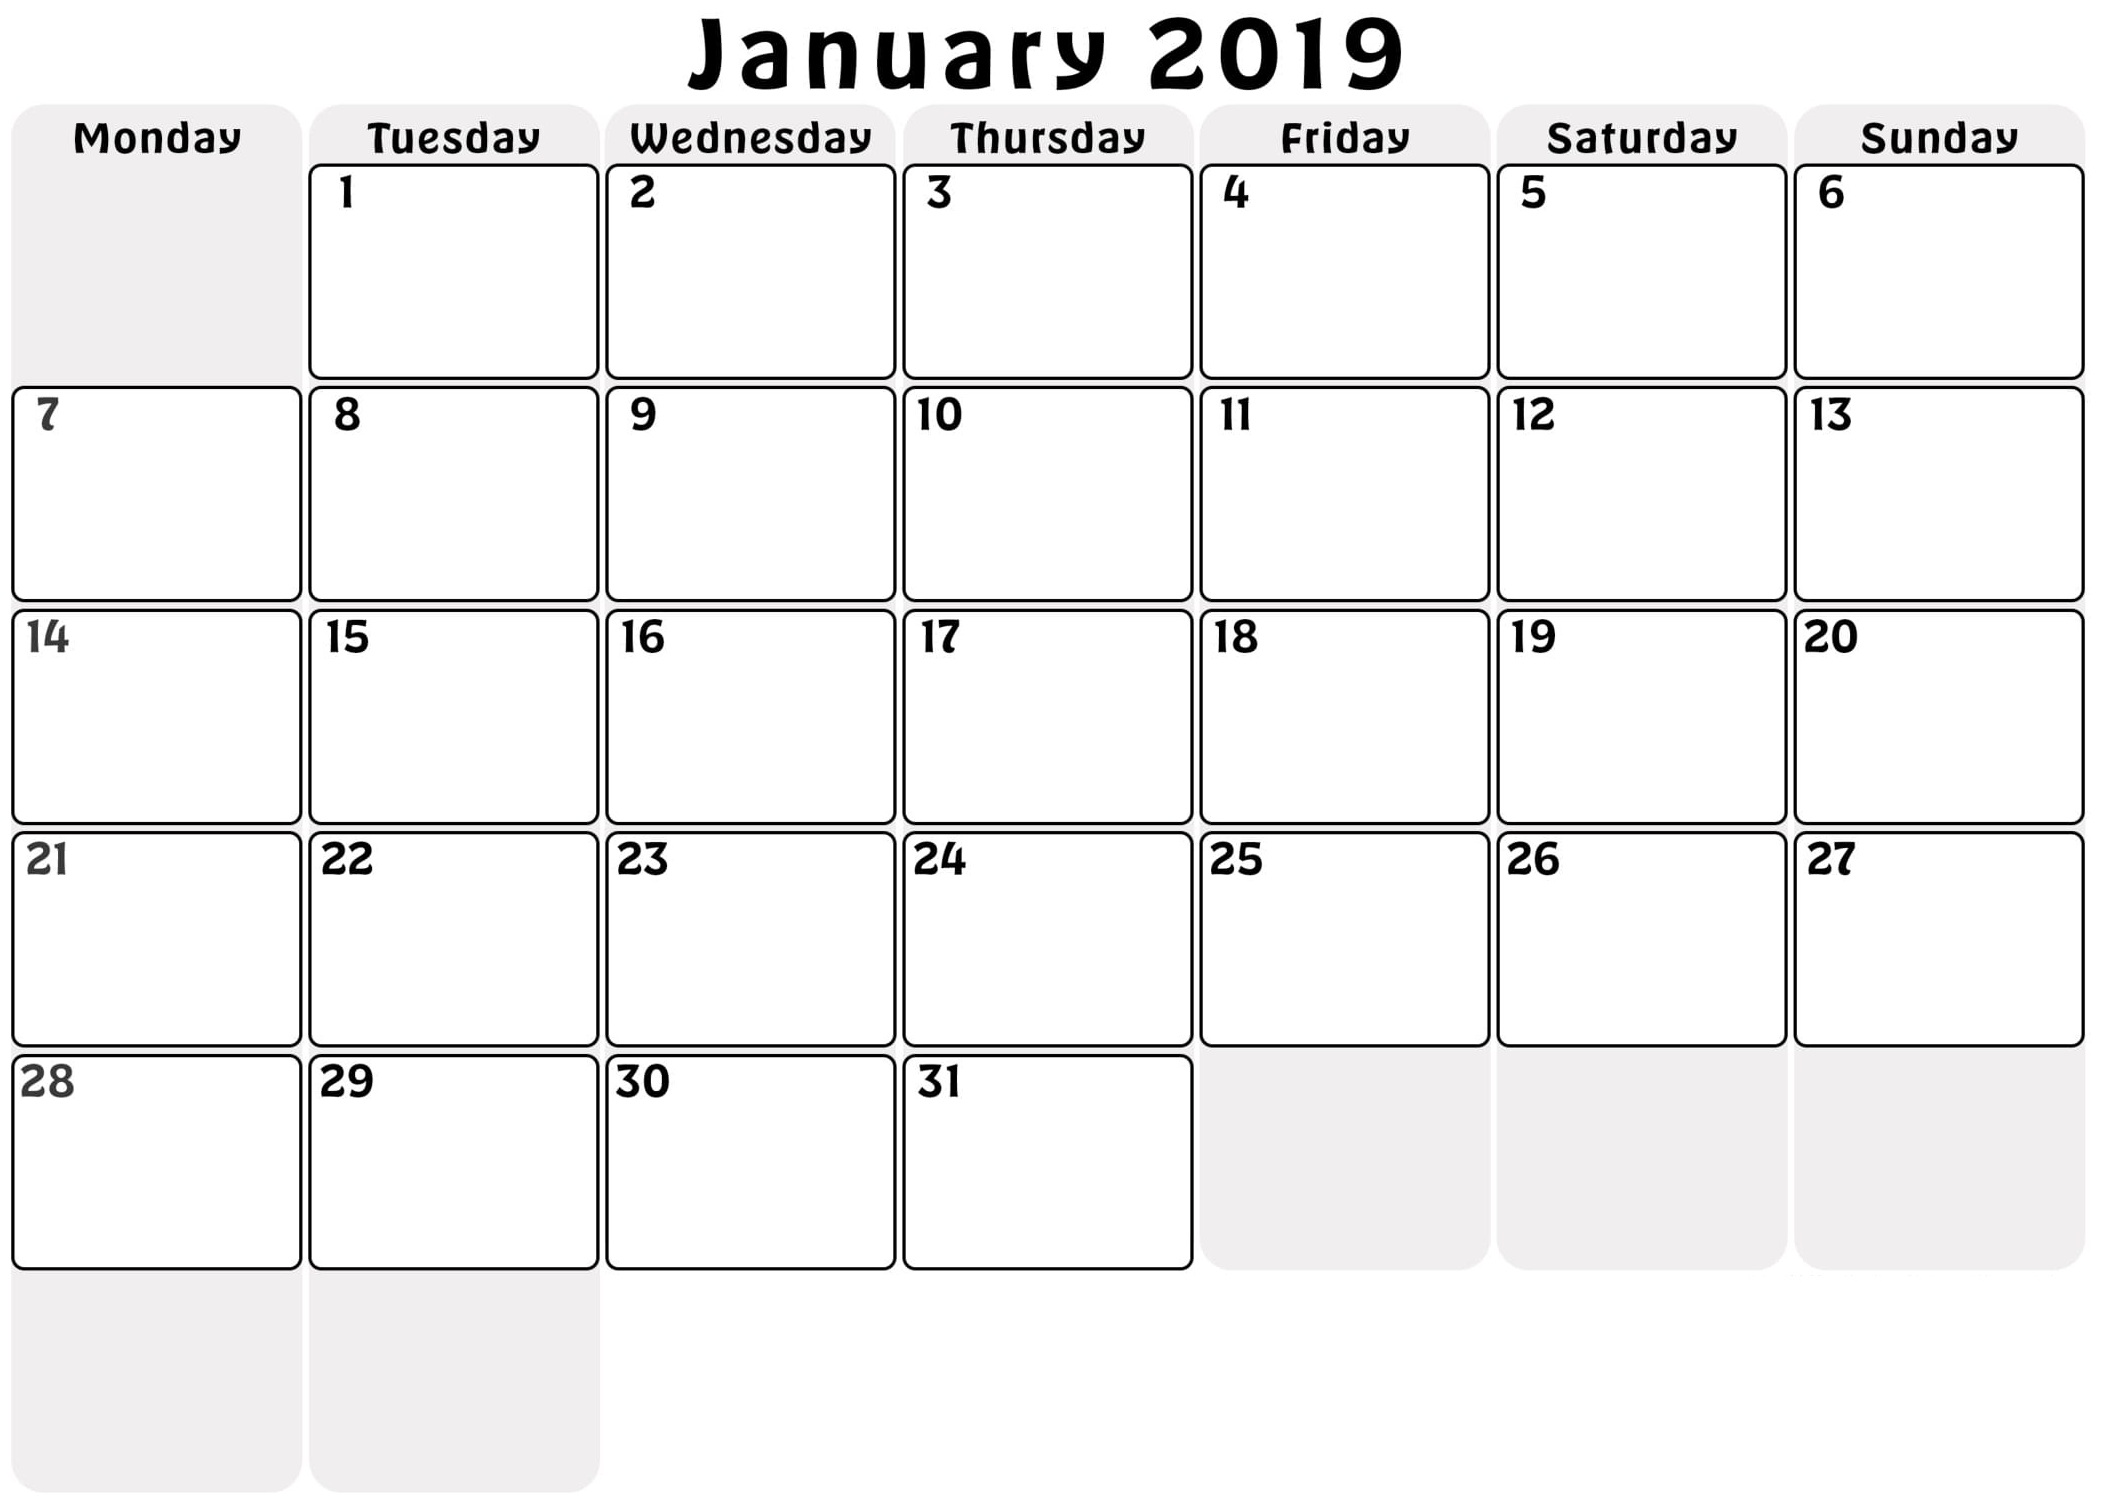 January 2019 Calendar Monthly Printable